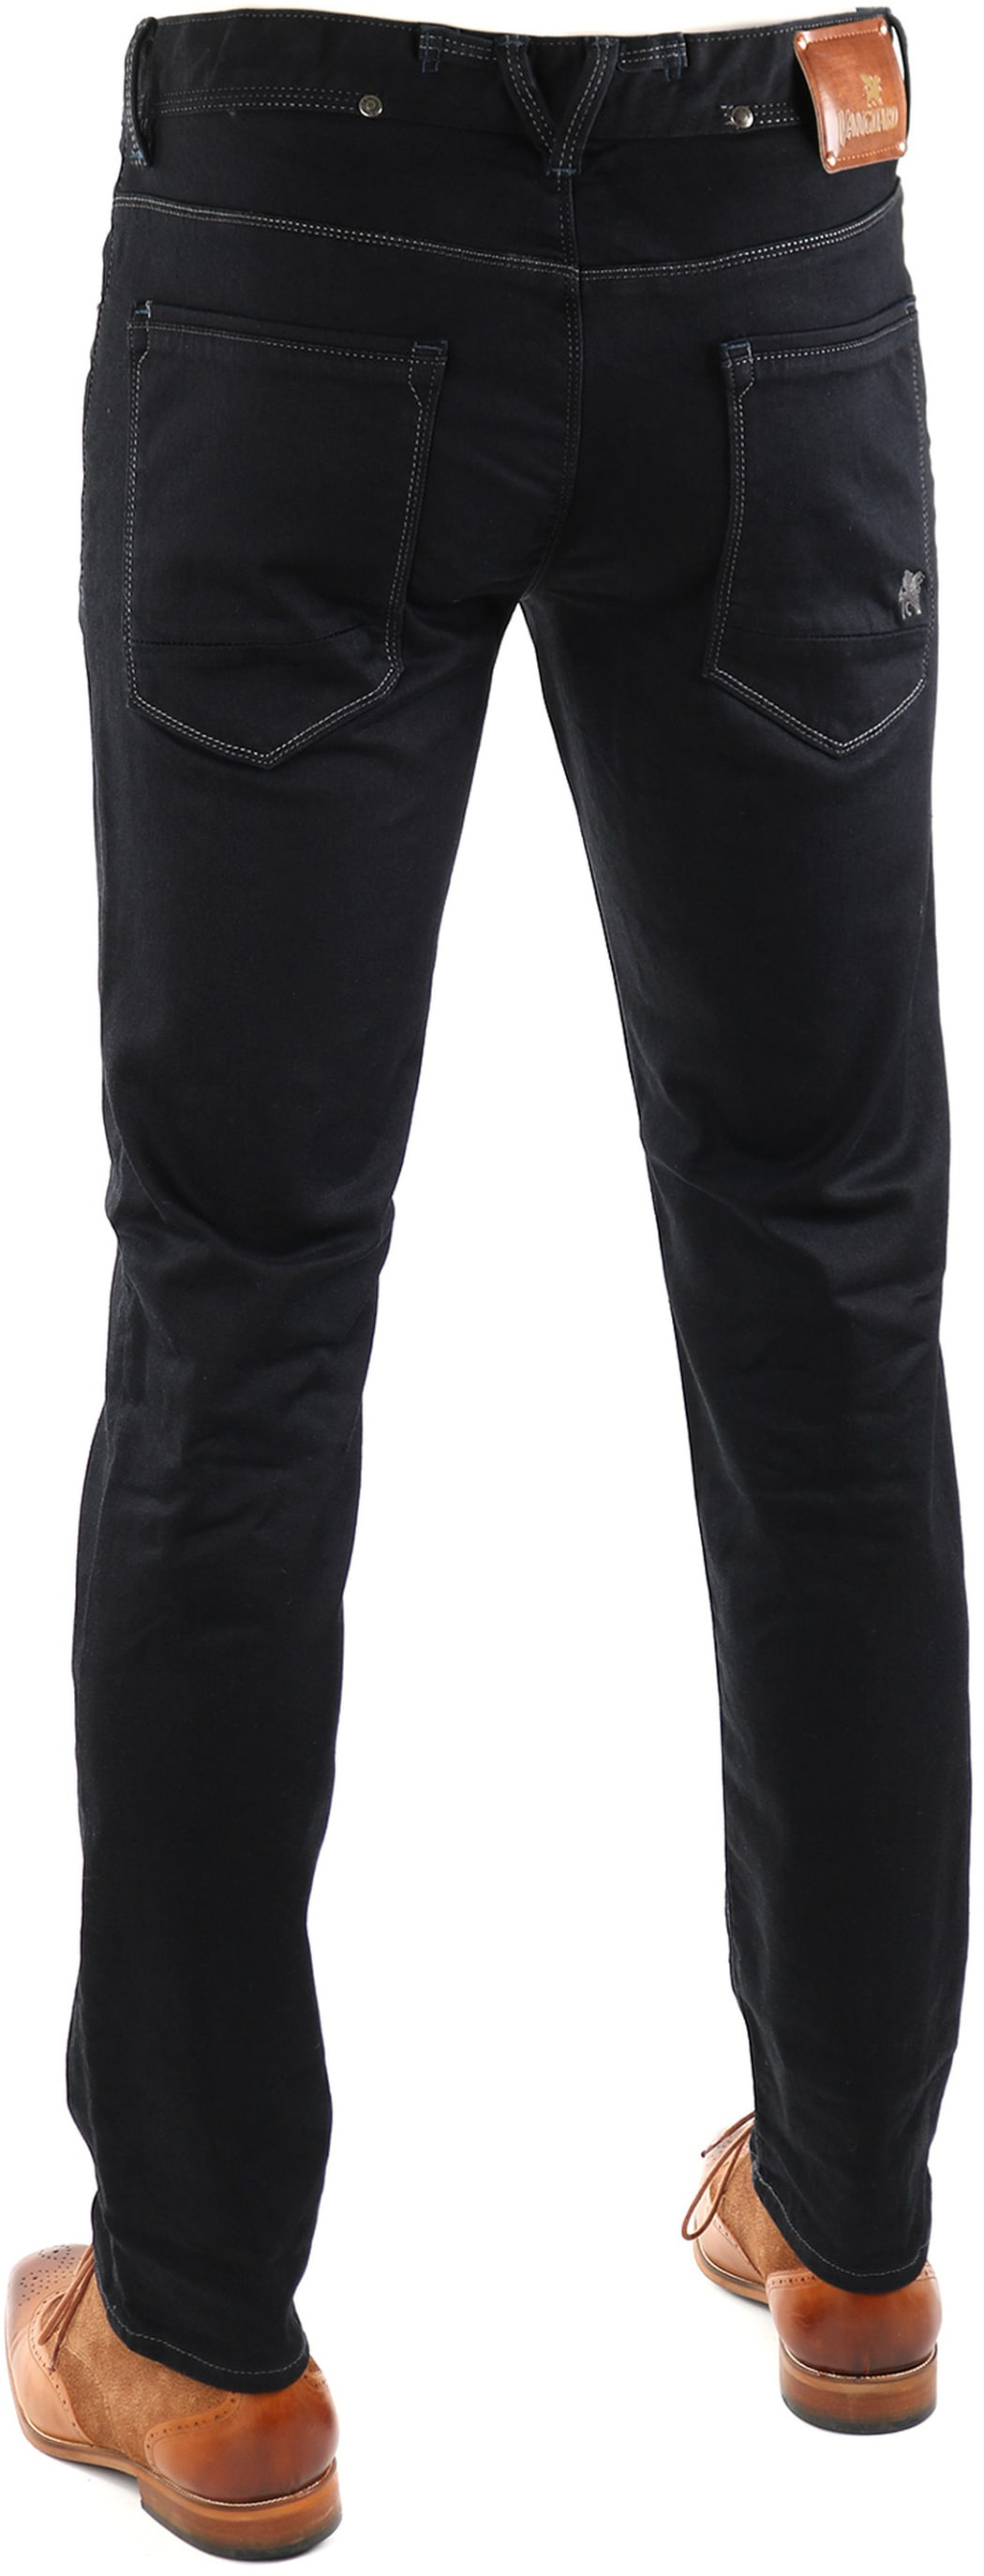 Vanguard V7 Slim Jeans Stretch DCD foto 4